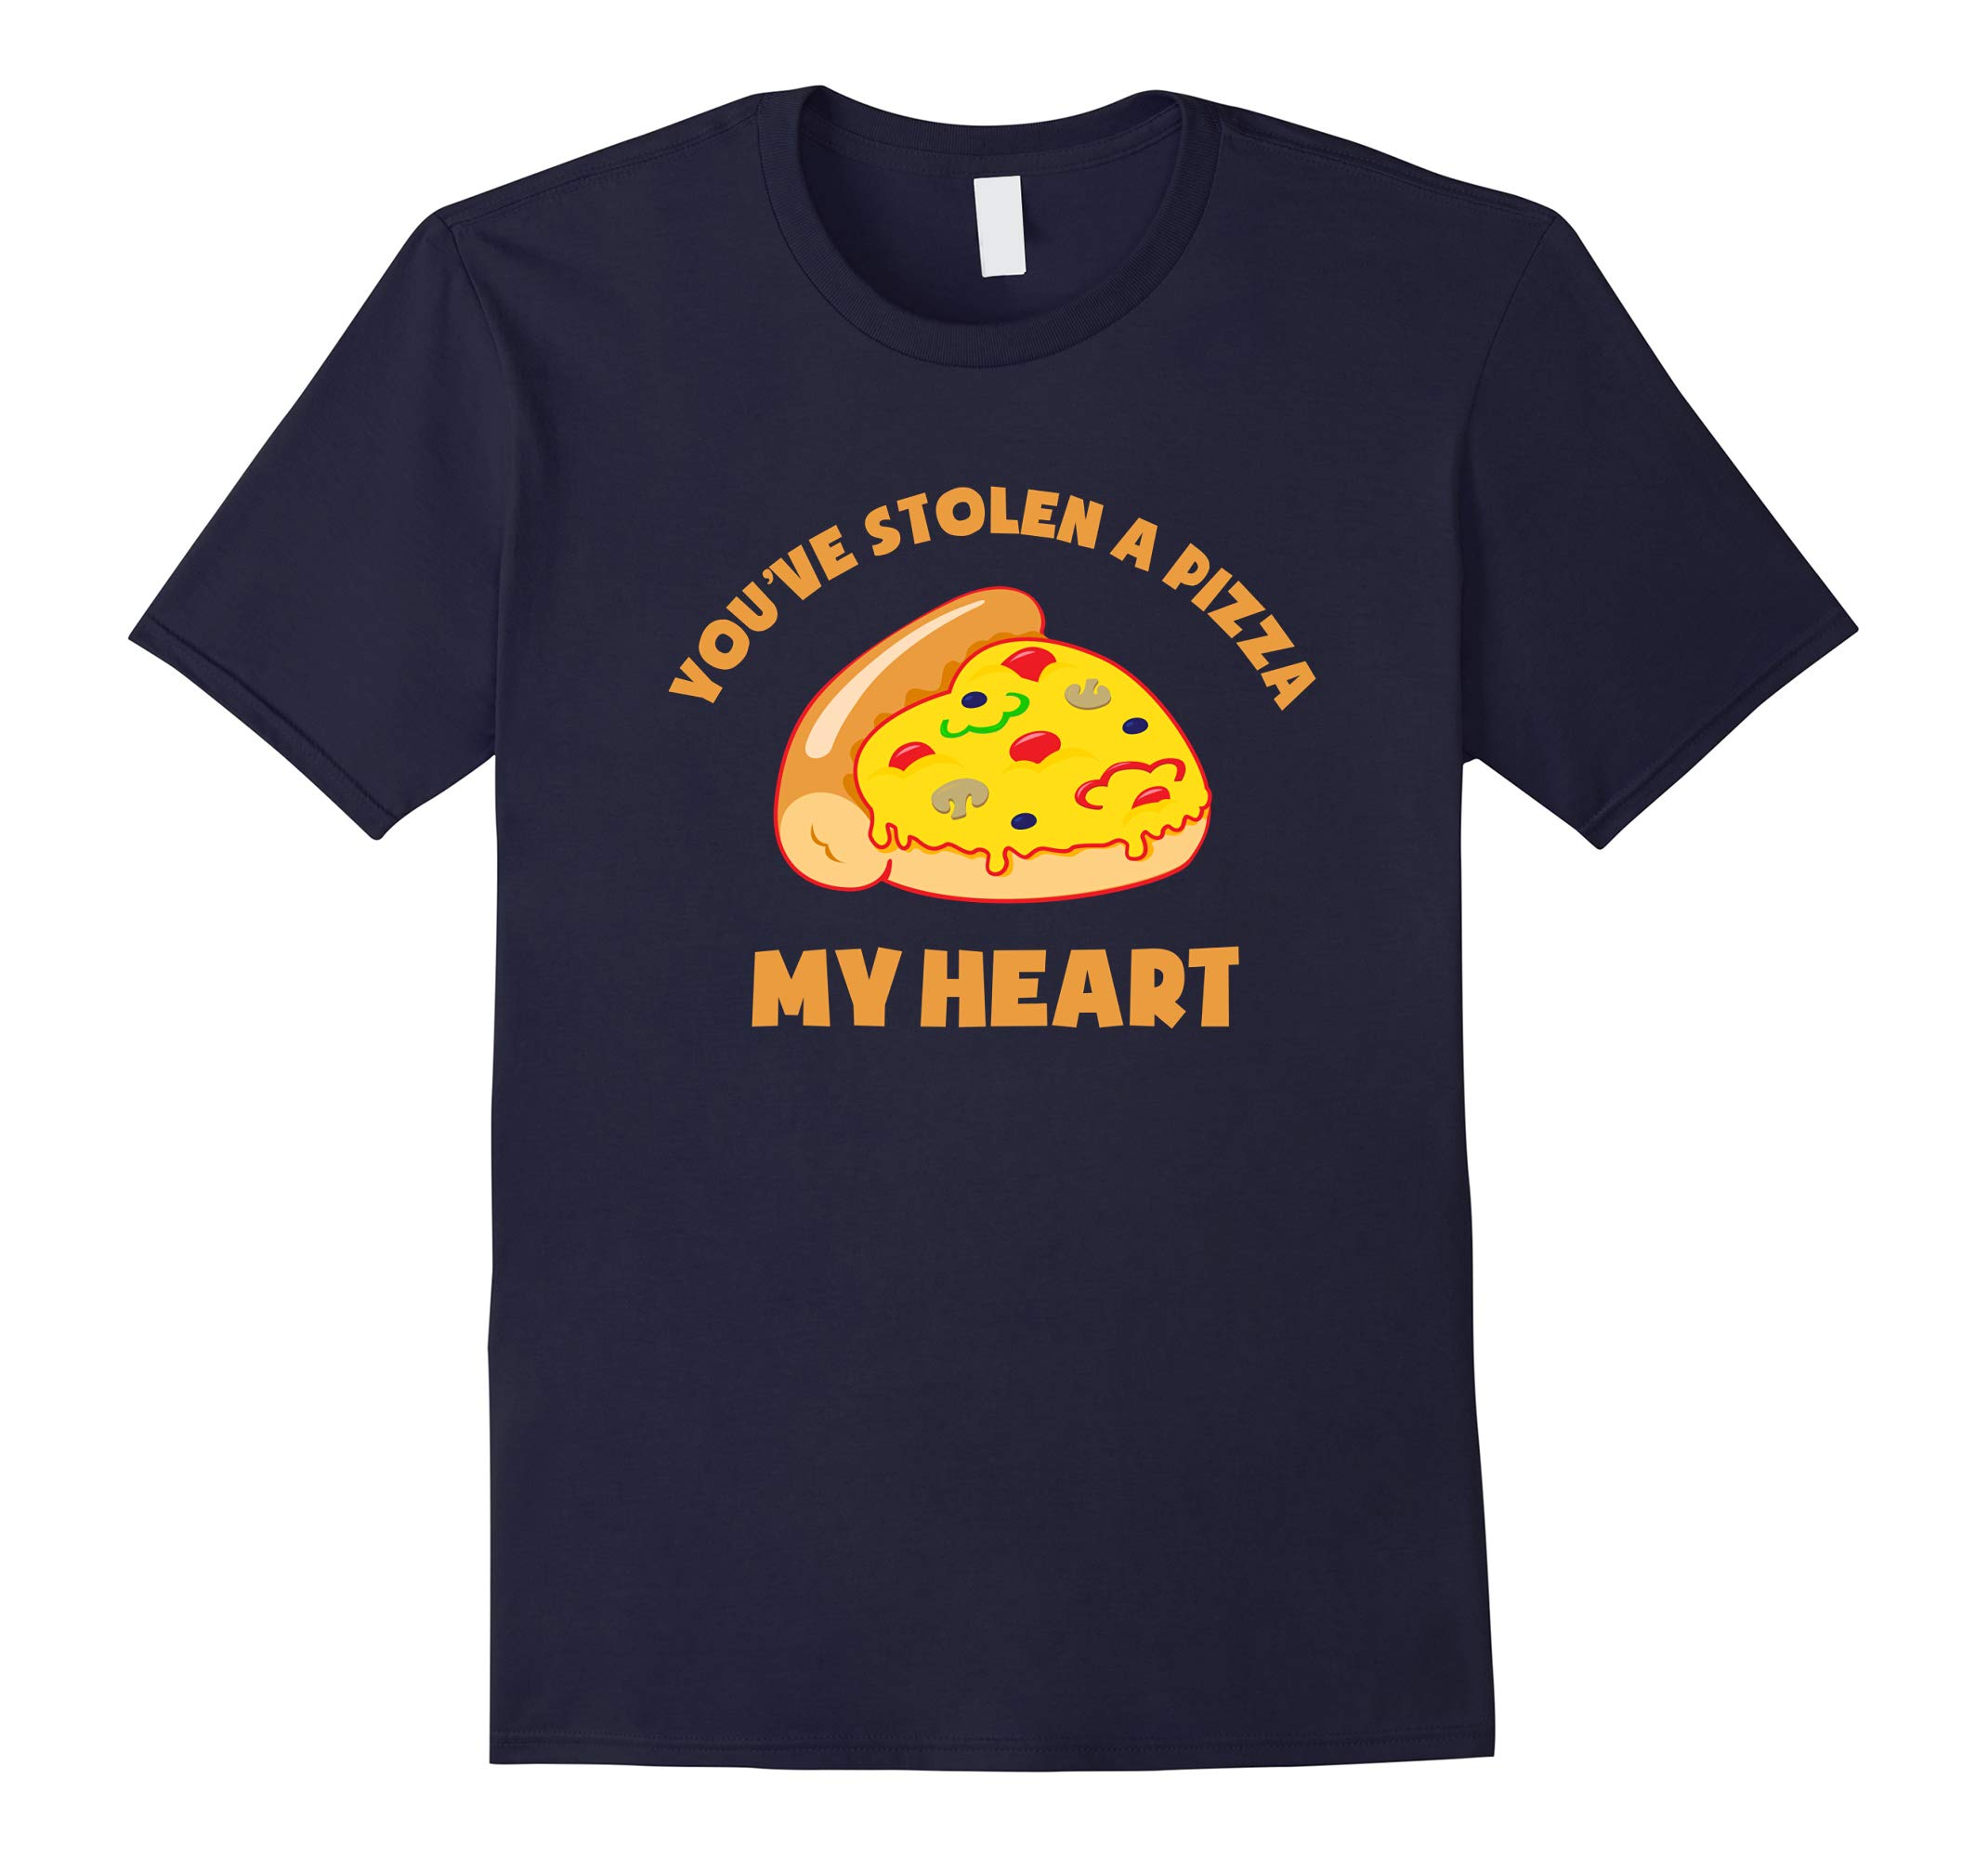 You've stolen a pizza my heart - Funny Valentine's Day Shirt-RT